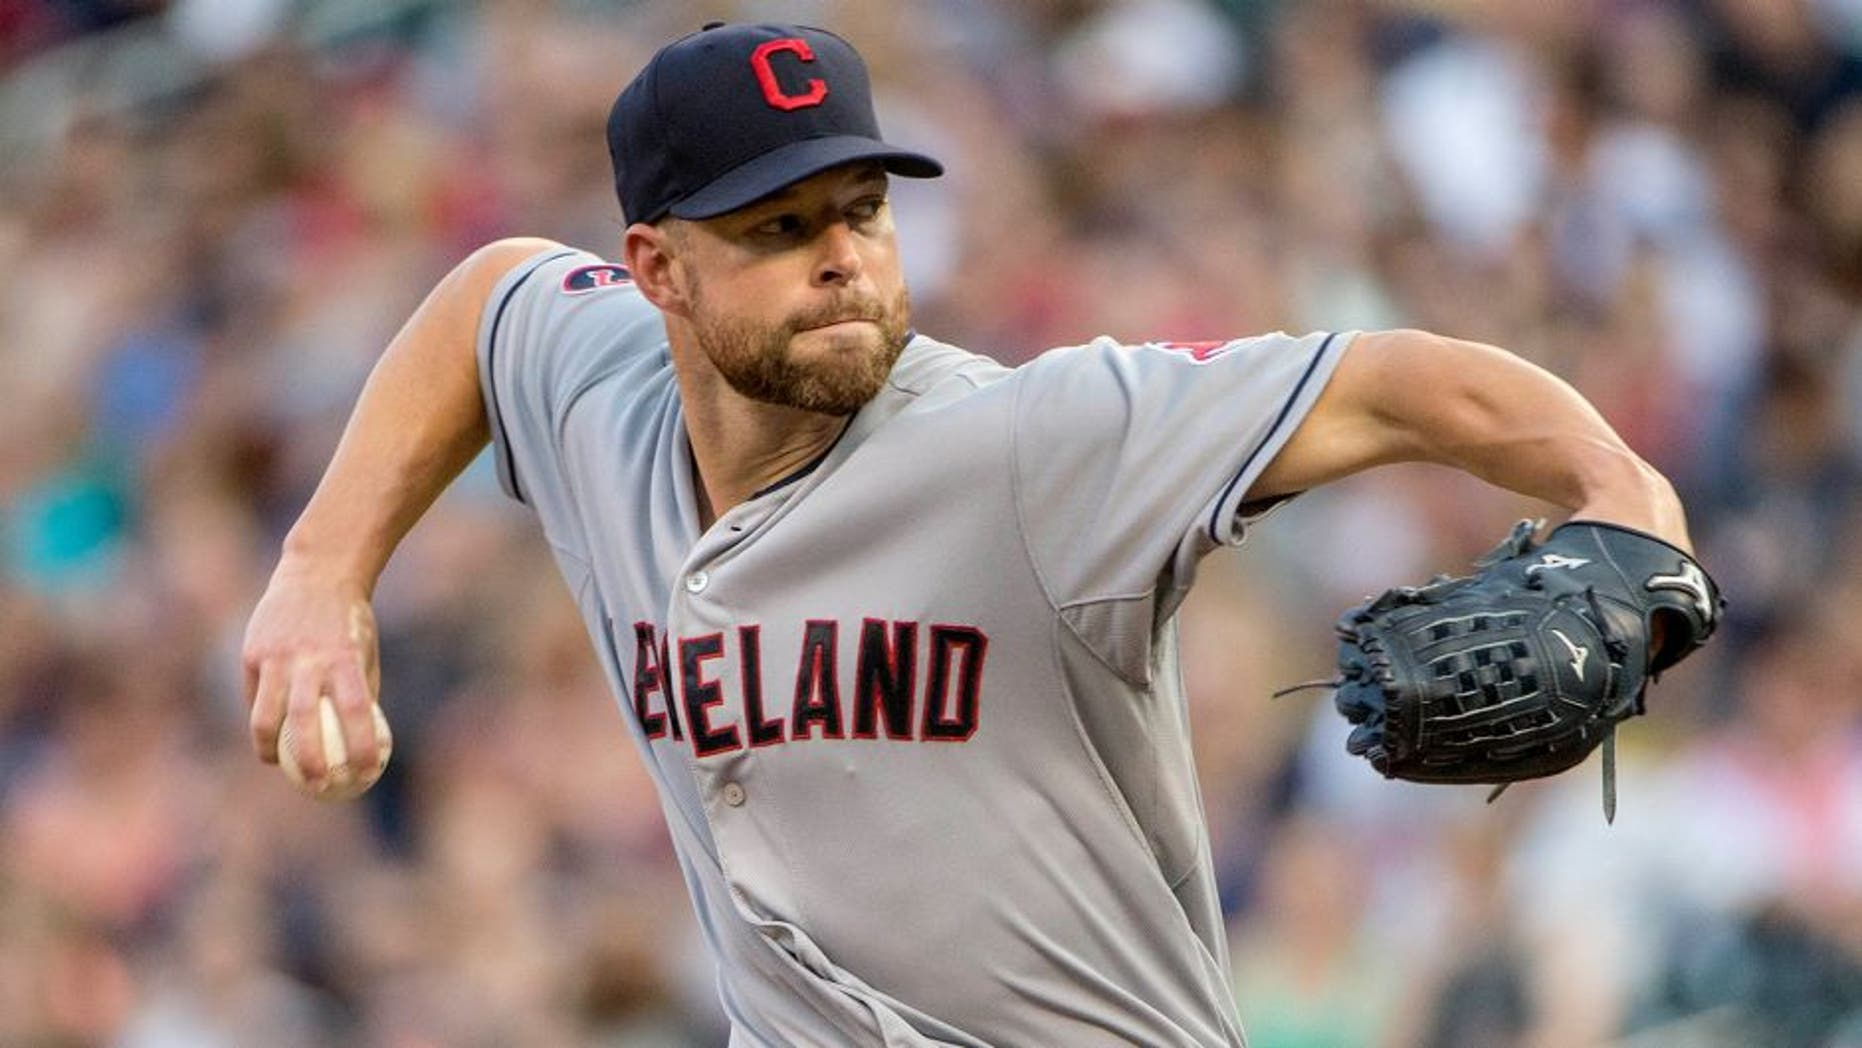 Aug 14, 2015; Minneapolis, MN, USA; Cleveland Indians starting pitcher Corey Kluber (28) delivers a pitch in the first inning against the Minnesota Twins at Target Field. Mandatory Credit: Jesse Johnson-USA TODAY Sports